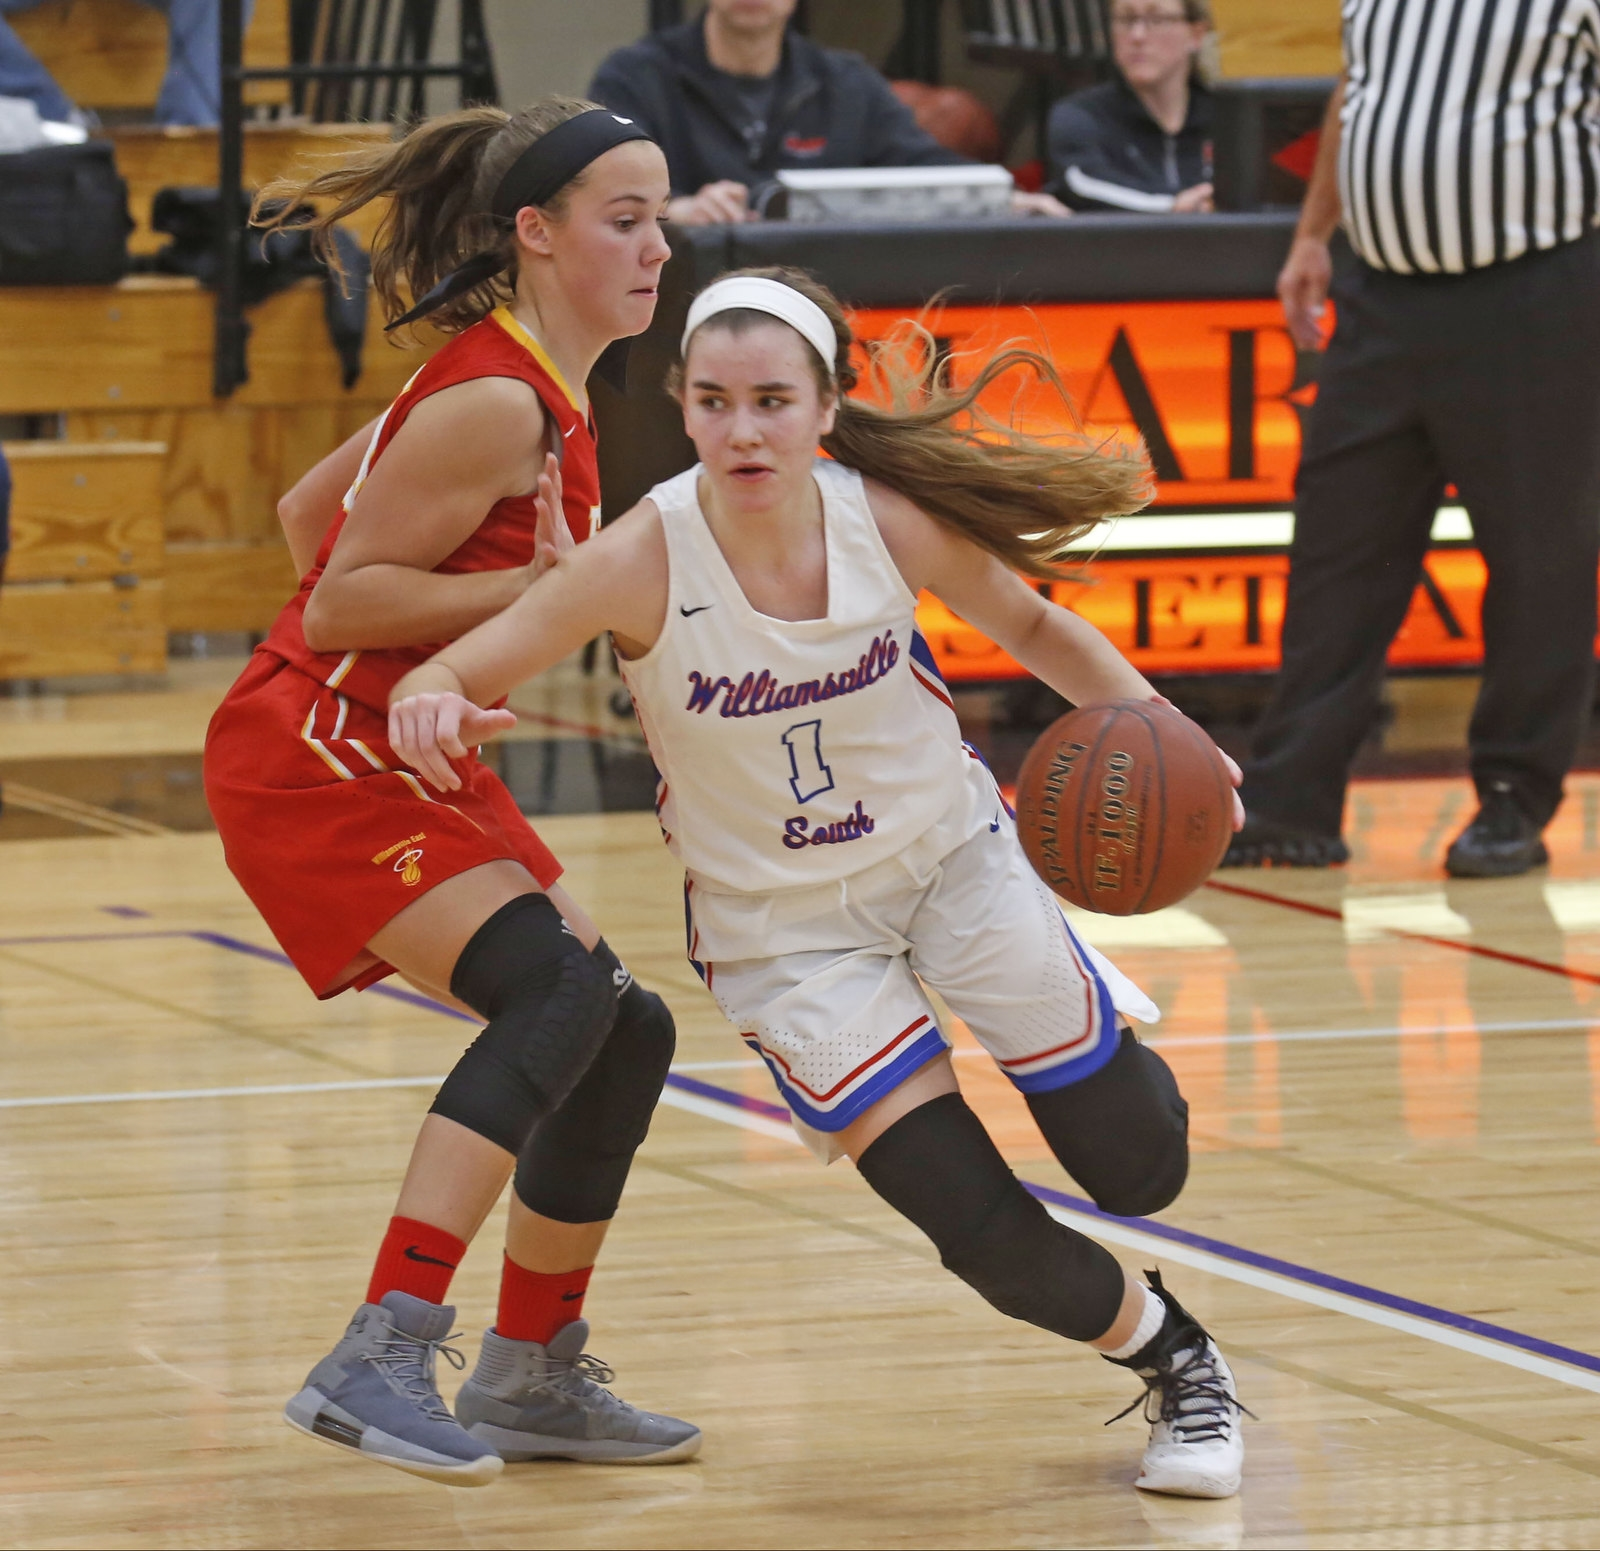 East's Courtney Mclay (20) tries to hold off South's Hannah Dolan (1).